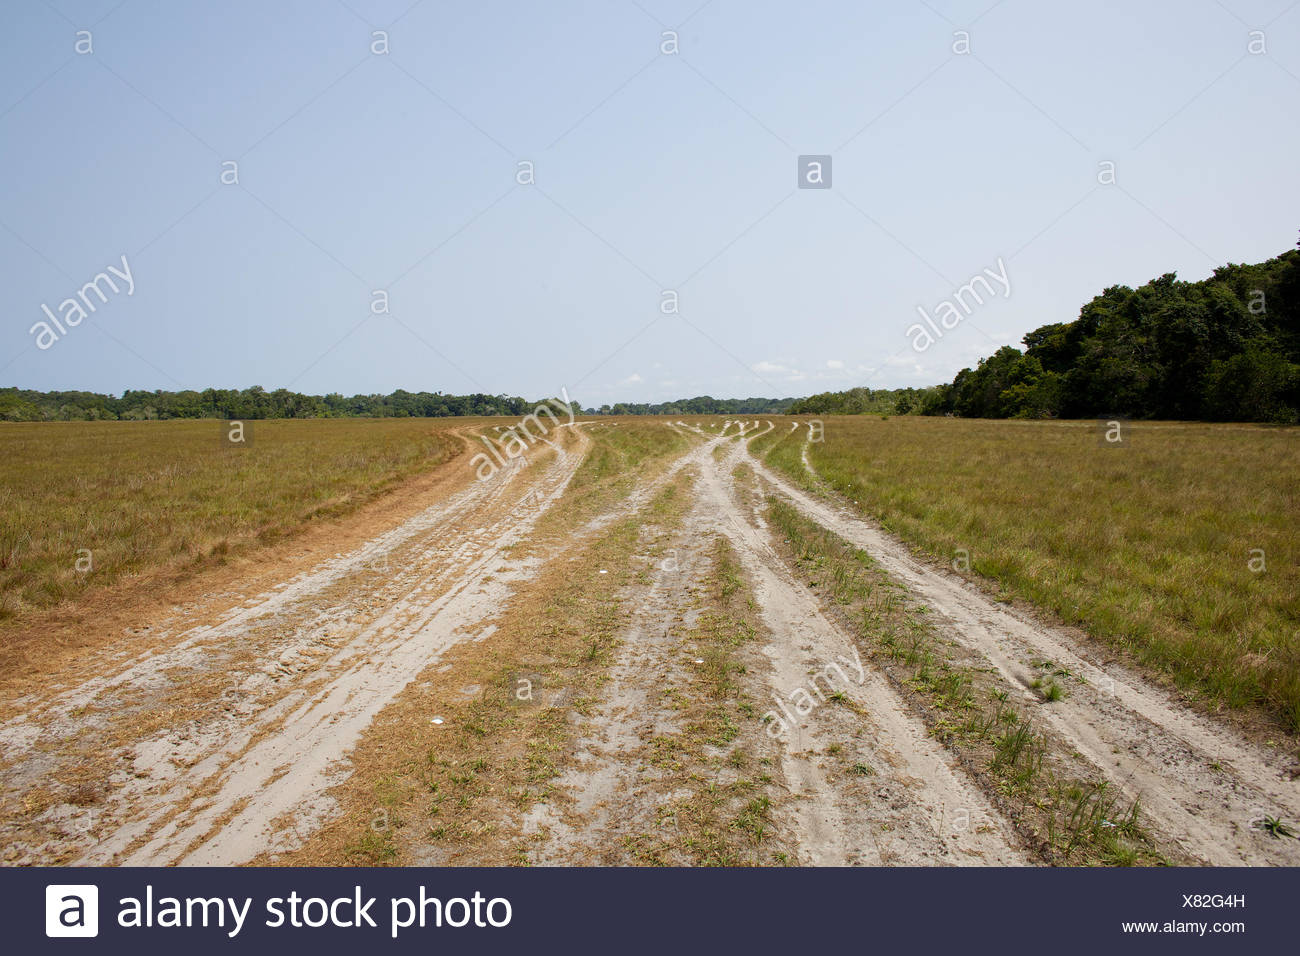 The impact caused by trucks driving in the savanna. - Stock Image